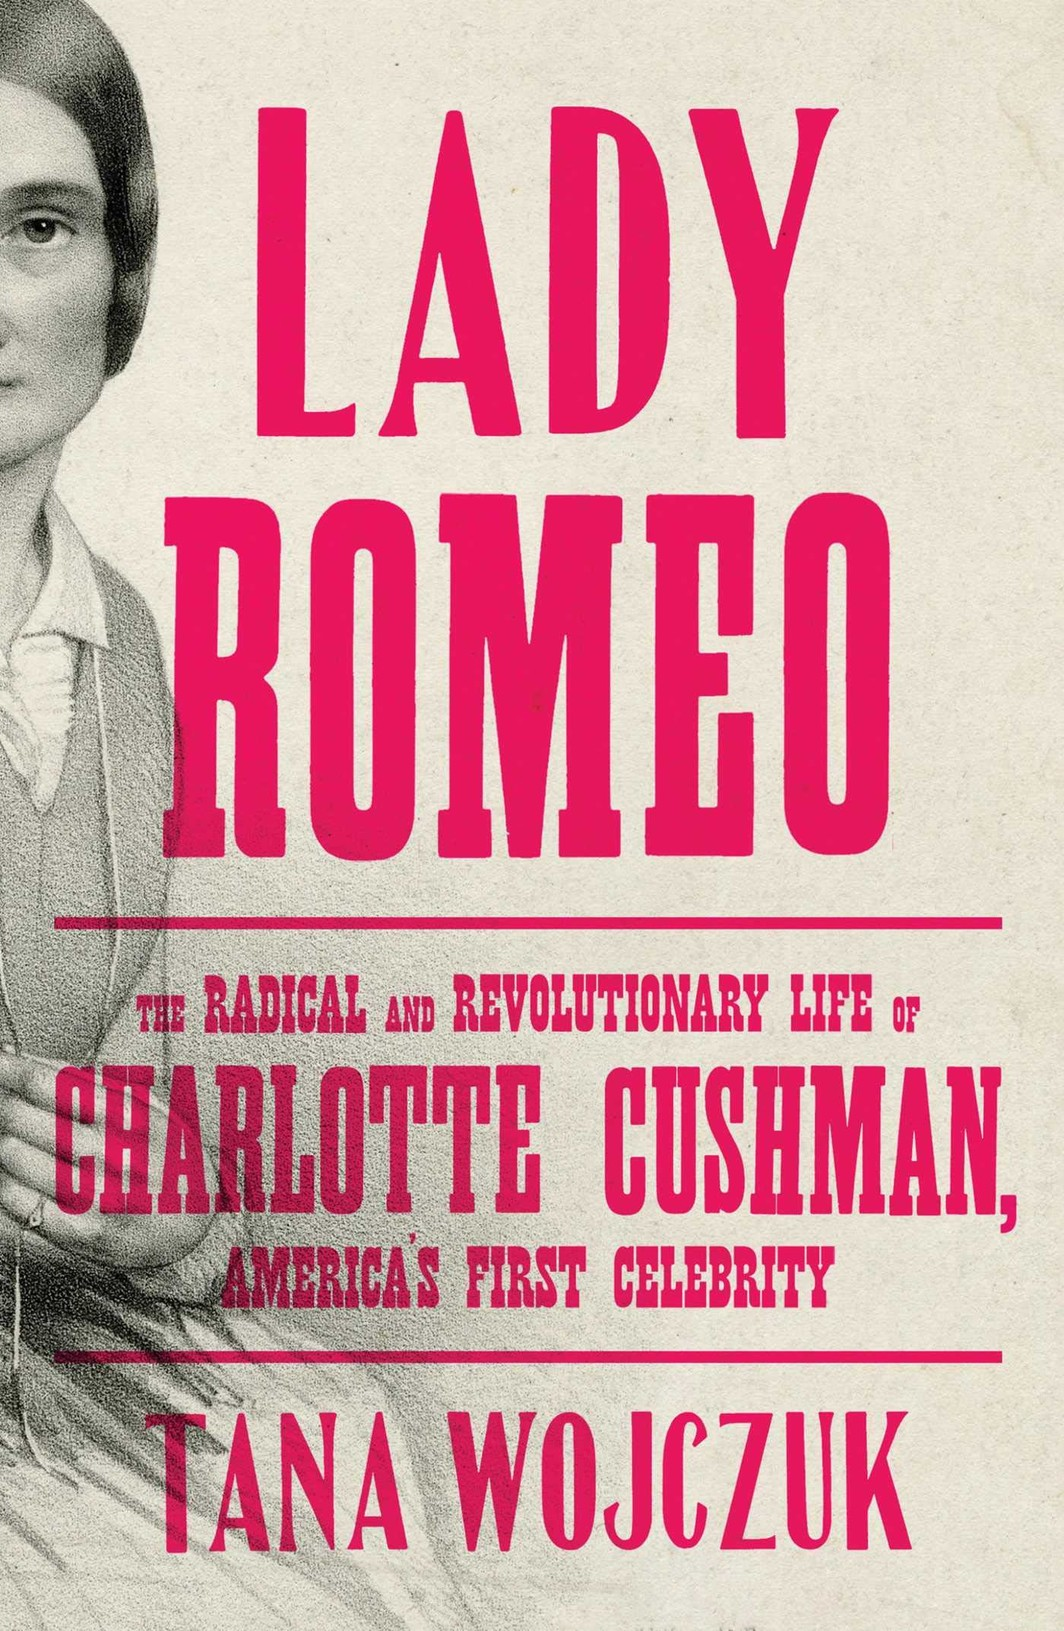 The cover of Lady Romeo: The Radical and Revolutionary Life of Charlotte Cushman, America's First Celebrity